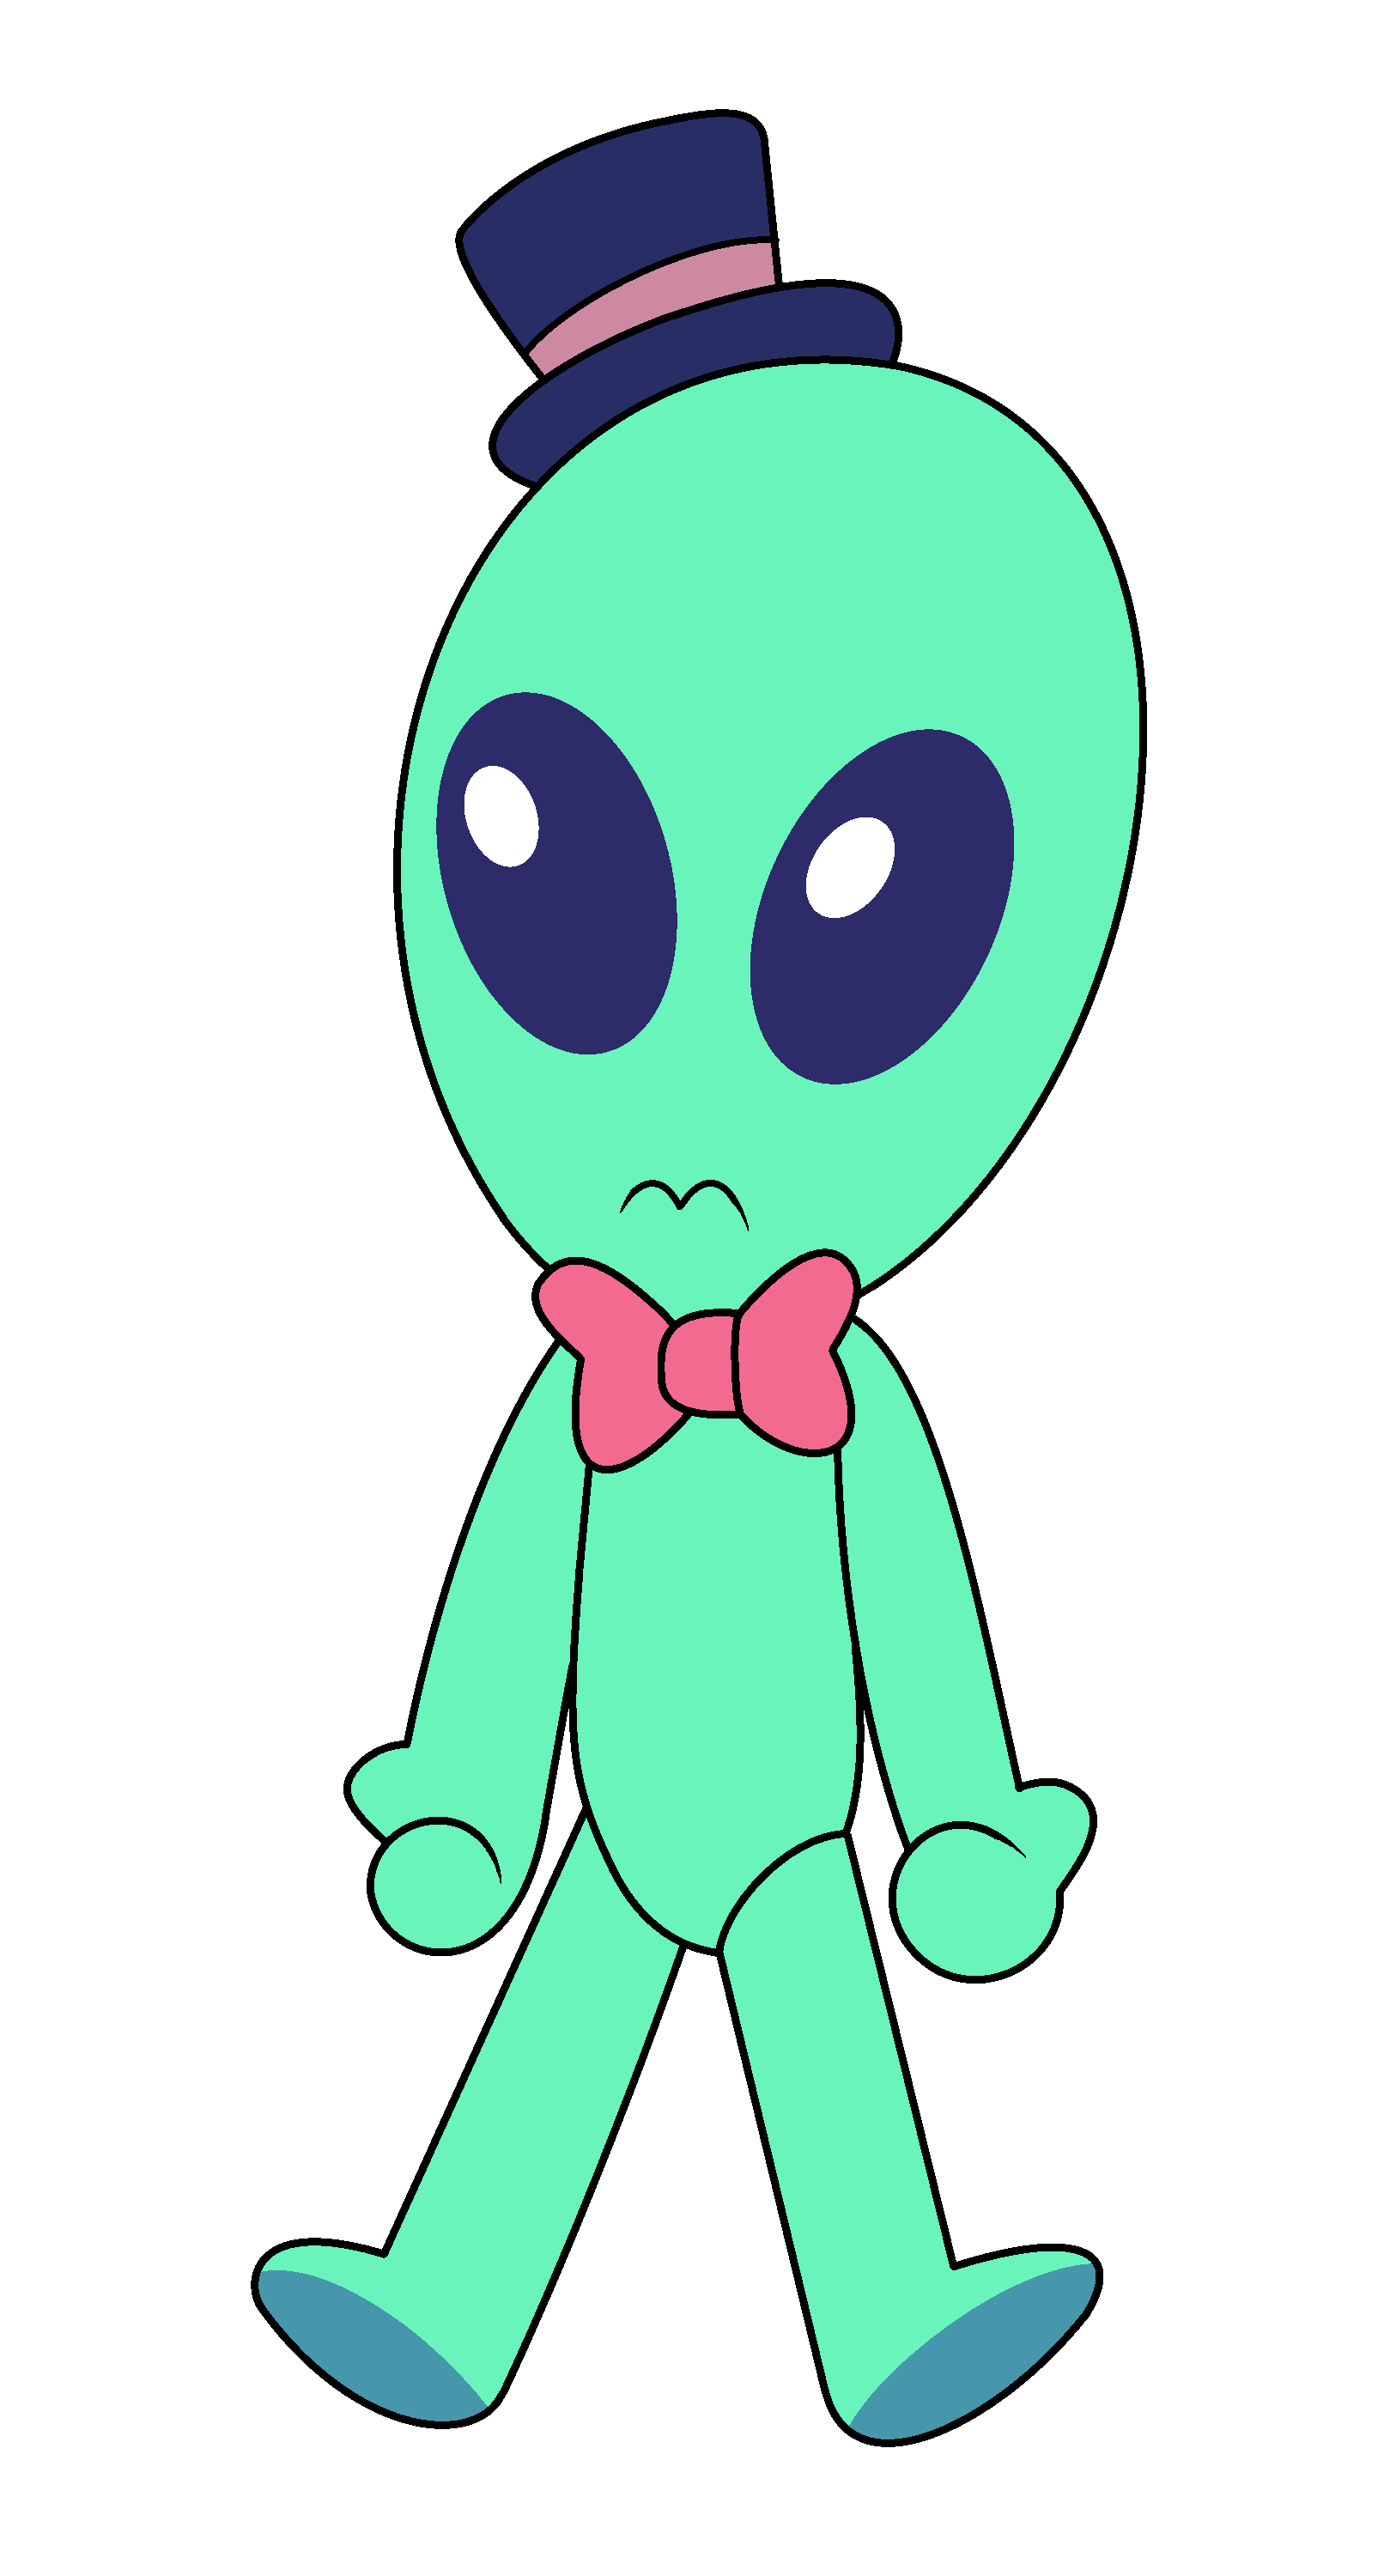 Balled boy holding money clipart svg transparent library Minor Objects/Toys   Steven Universe Wiki   FANDOM powered by Wikia svg transparent library